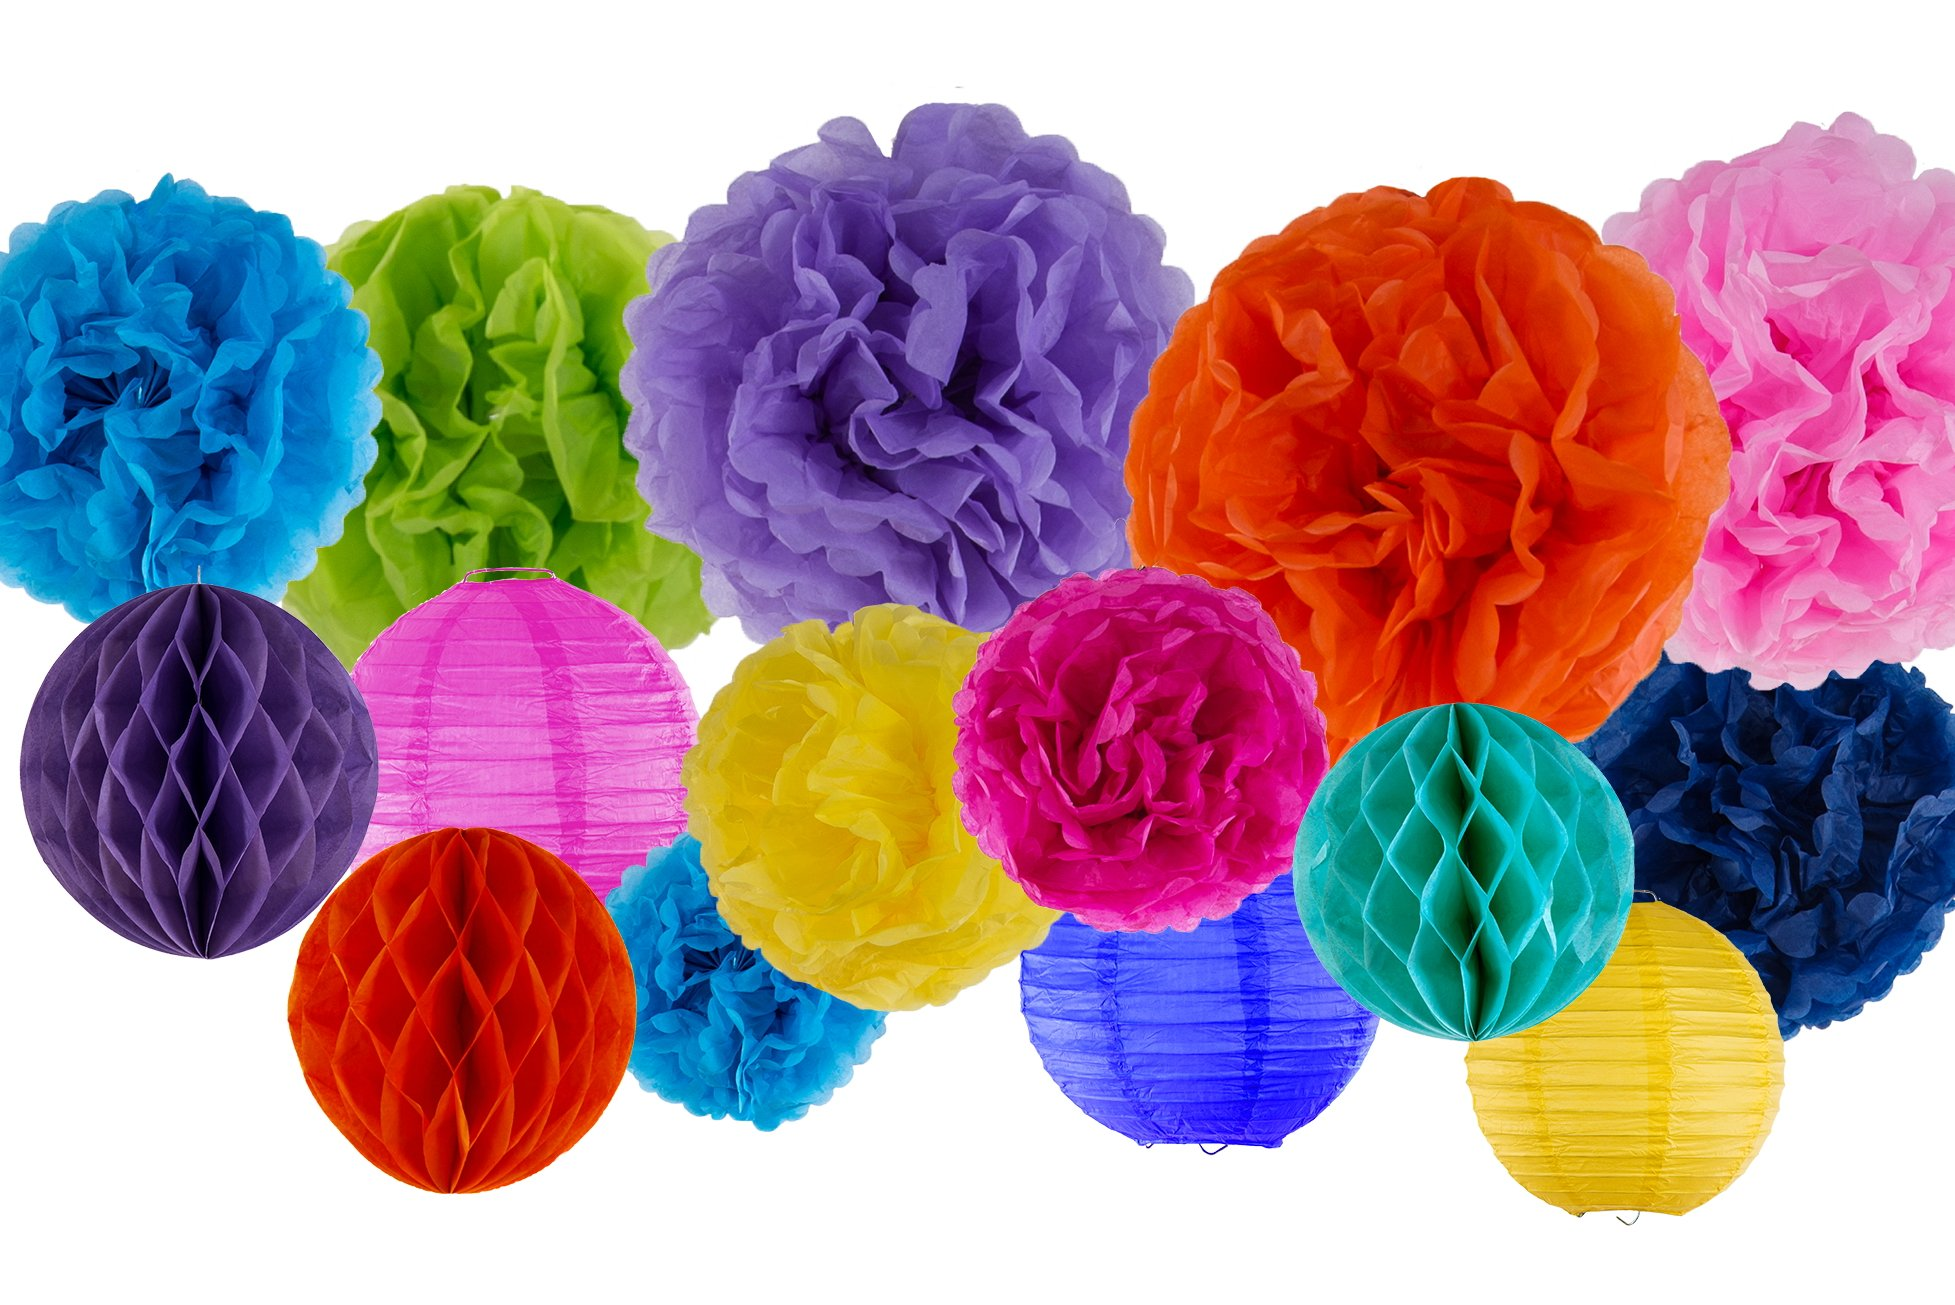 VIDAL CRAFTS 30 Pcs Party Tissue Paper Pom Poms Kit (14'', 10'', 8'', 6''), Paper Flowers, Paper Lanterns and Honeycomb Balls for Birthday, Baby Shower, Nursery Decor (Multicolor)